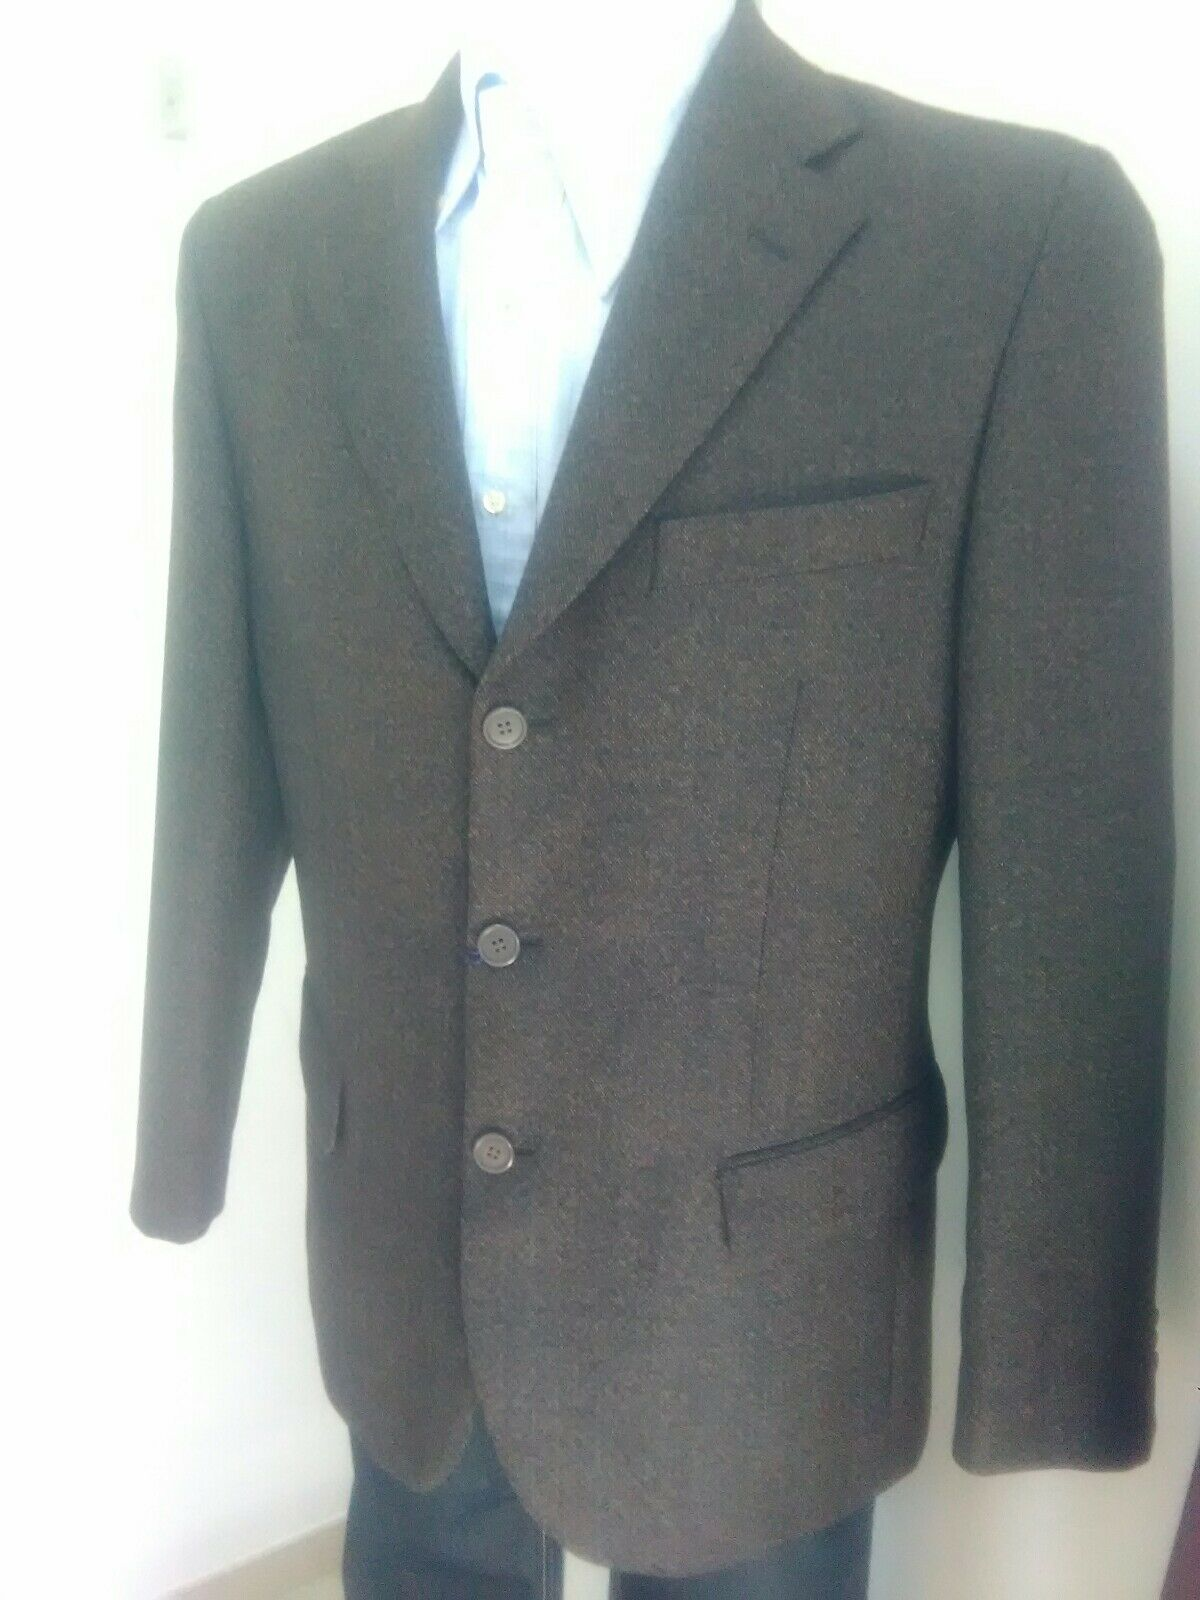 GIACCA UOMO INVERNALE MARRONE 100%WOOL TOM BEST TG 50